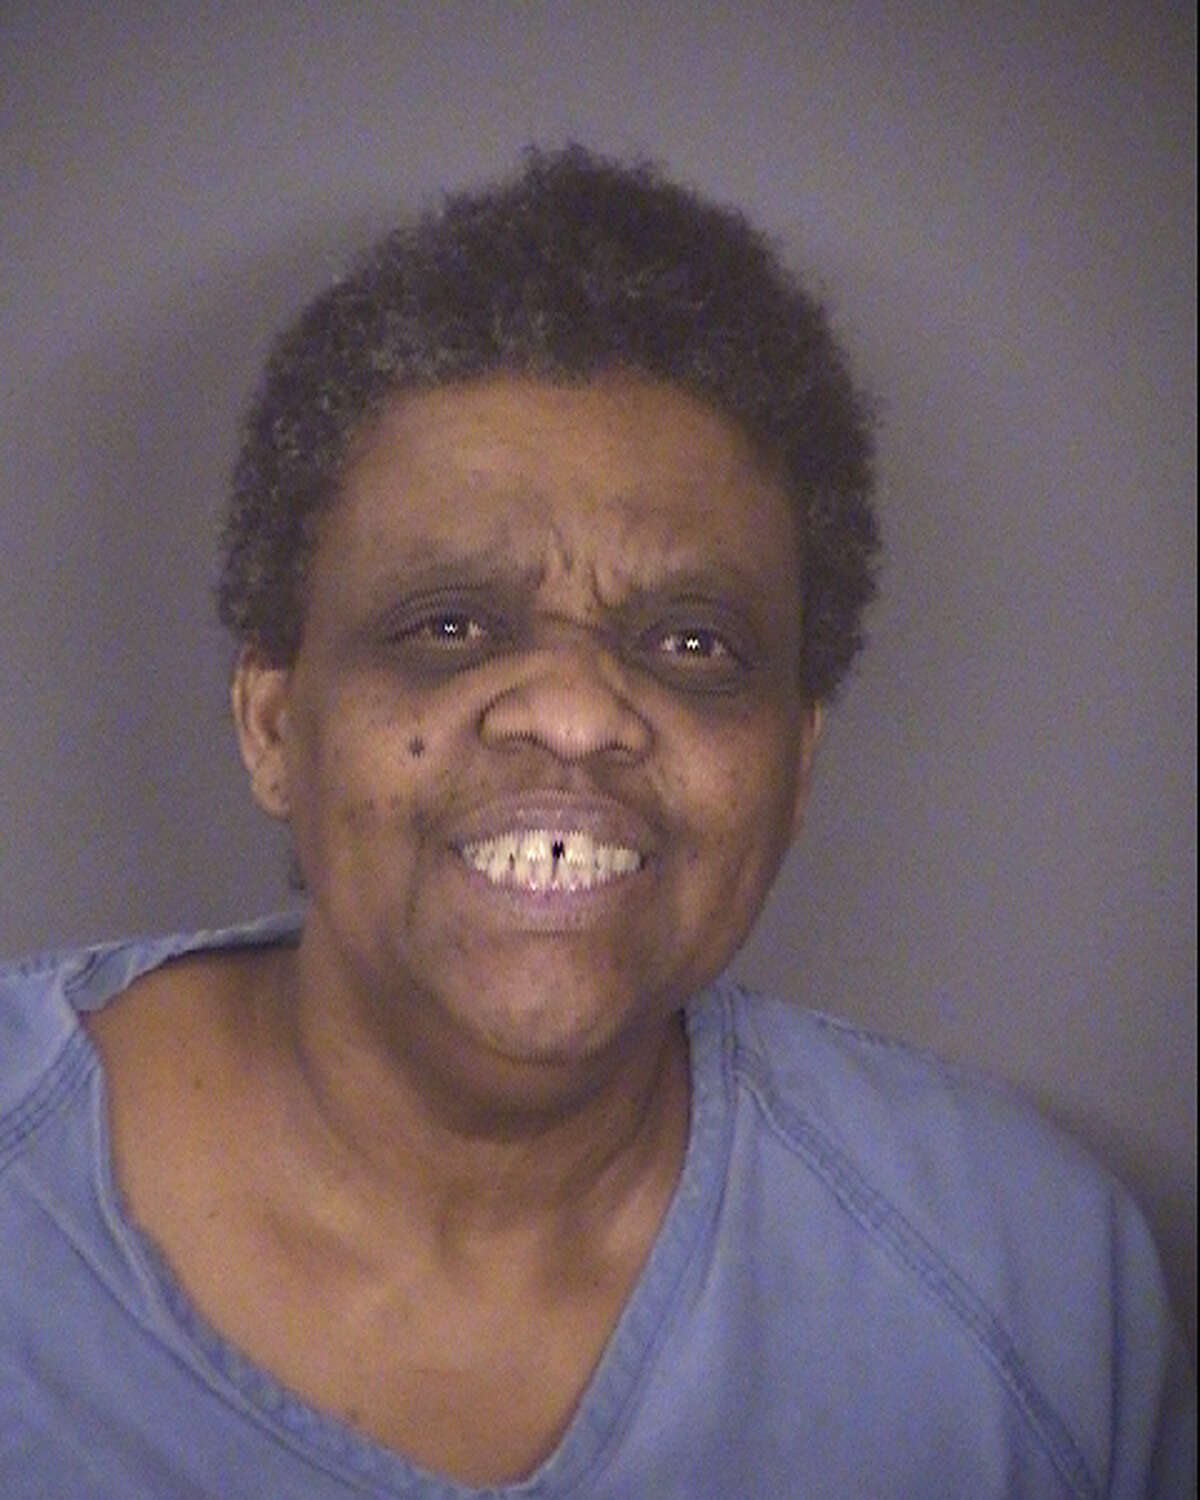 Janice Karen Dotson, 61, was identified as the woman who died Friday at the Bexar County Jail.